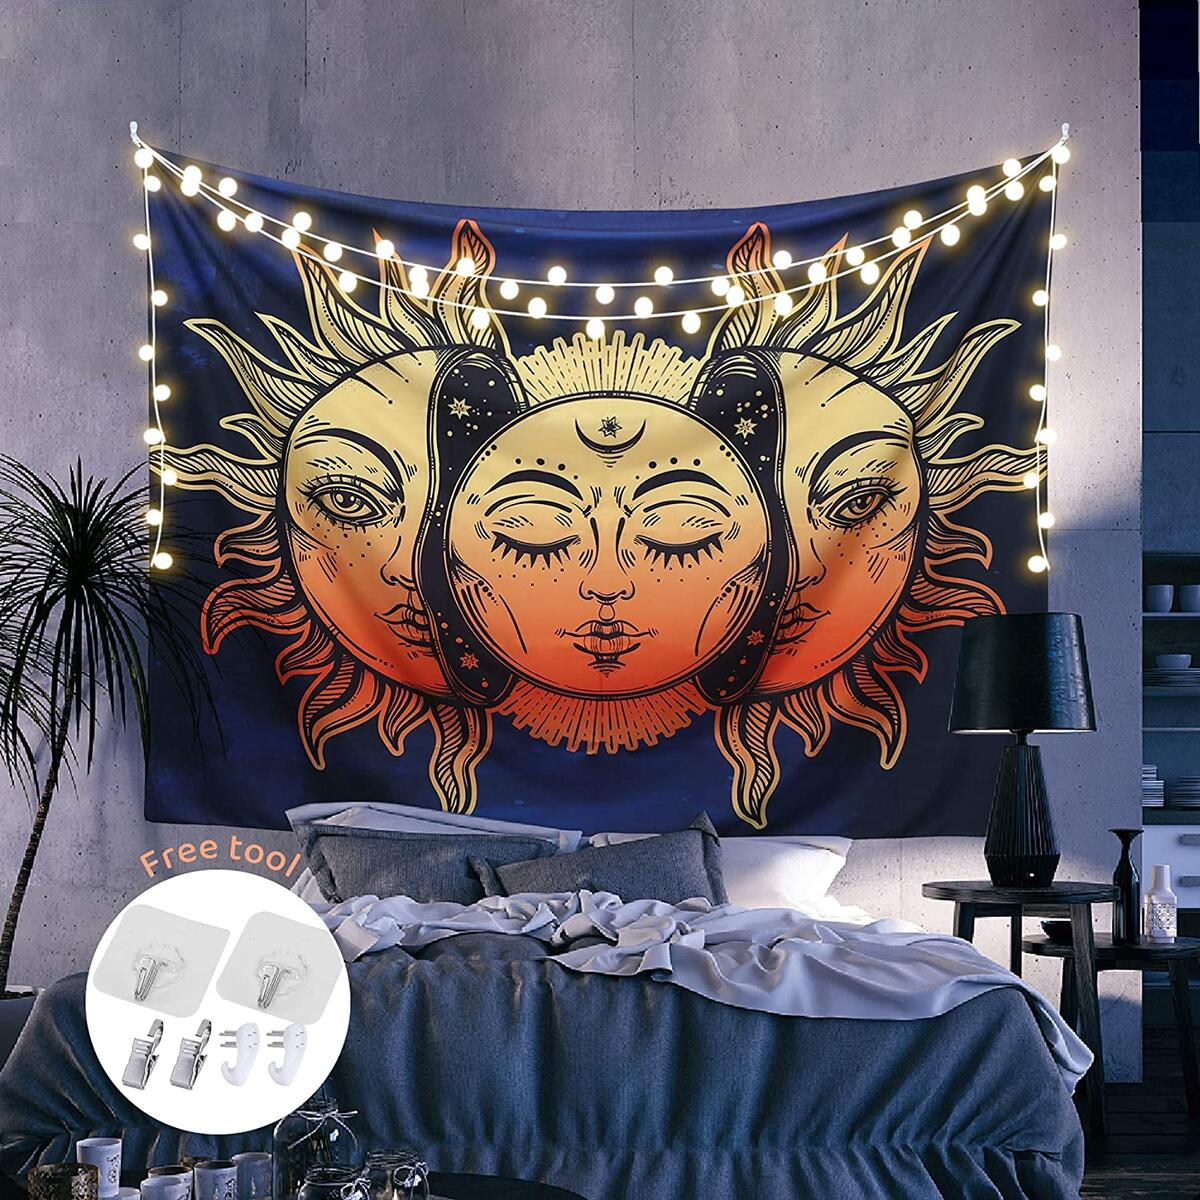 ARGIGU Sun and Moon Tapestry, Burning Sun with Stars Psychedelic Popular Mystic Wall Hanging Tapestry For Bedroom Aesthetic (78.7 x 59in)